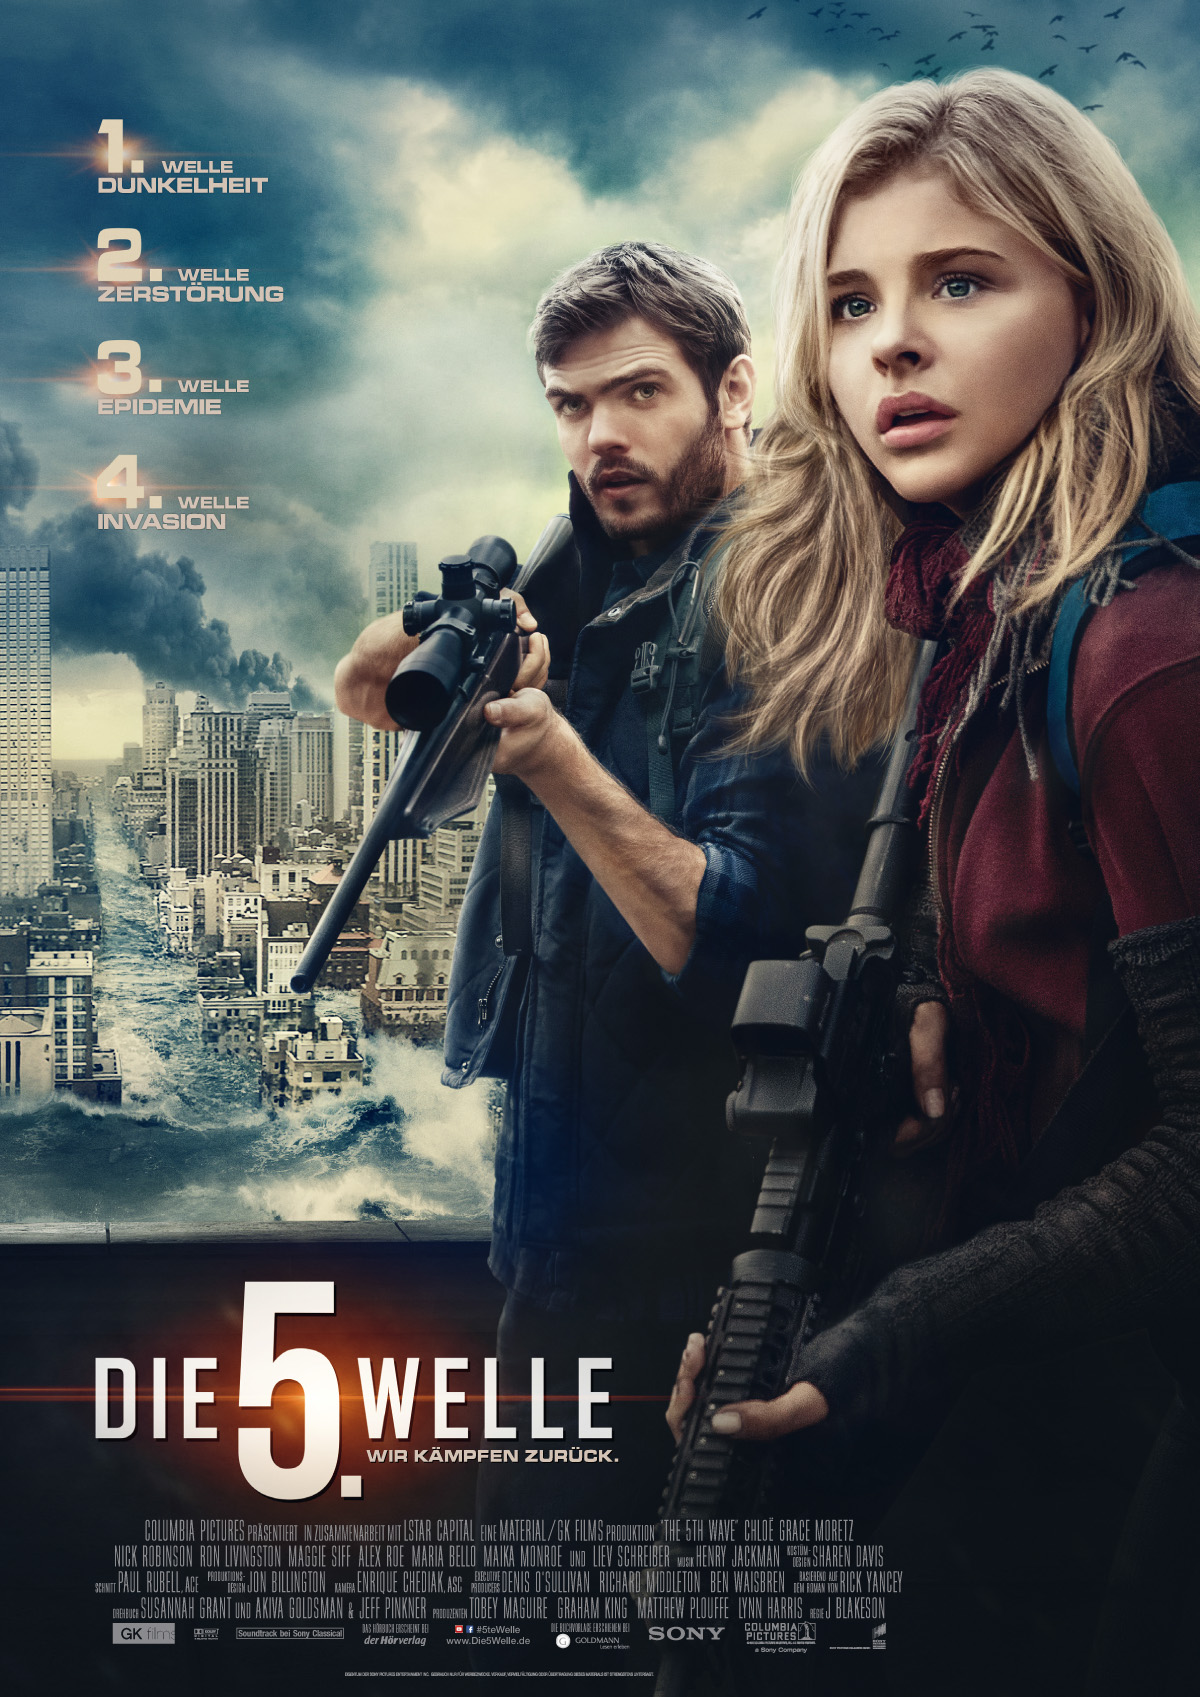 die 5. welle film